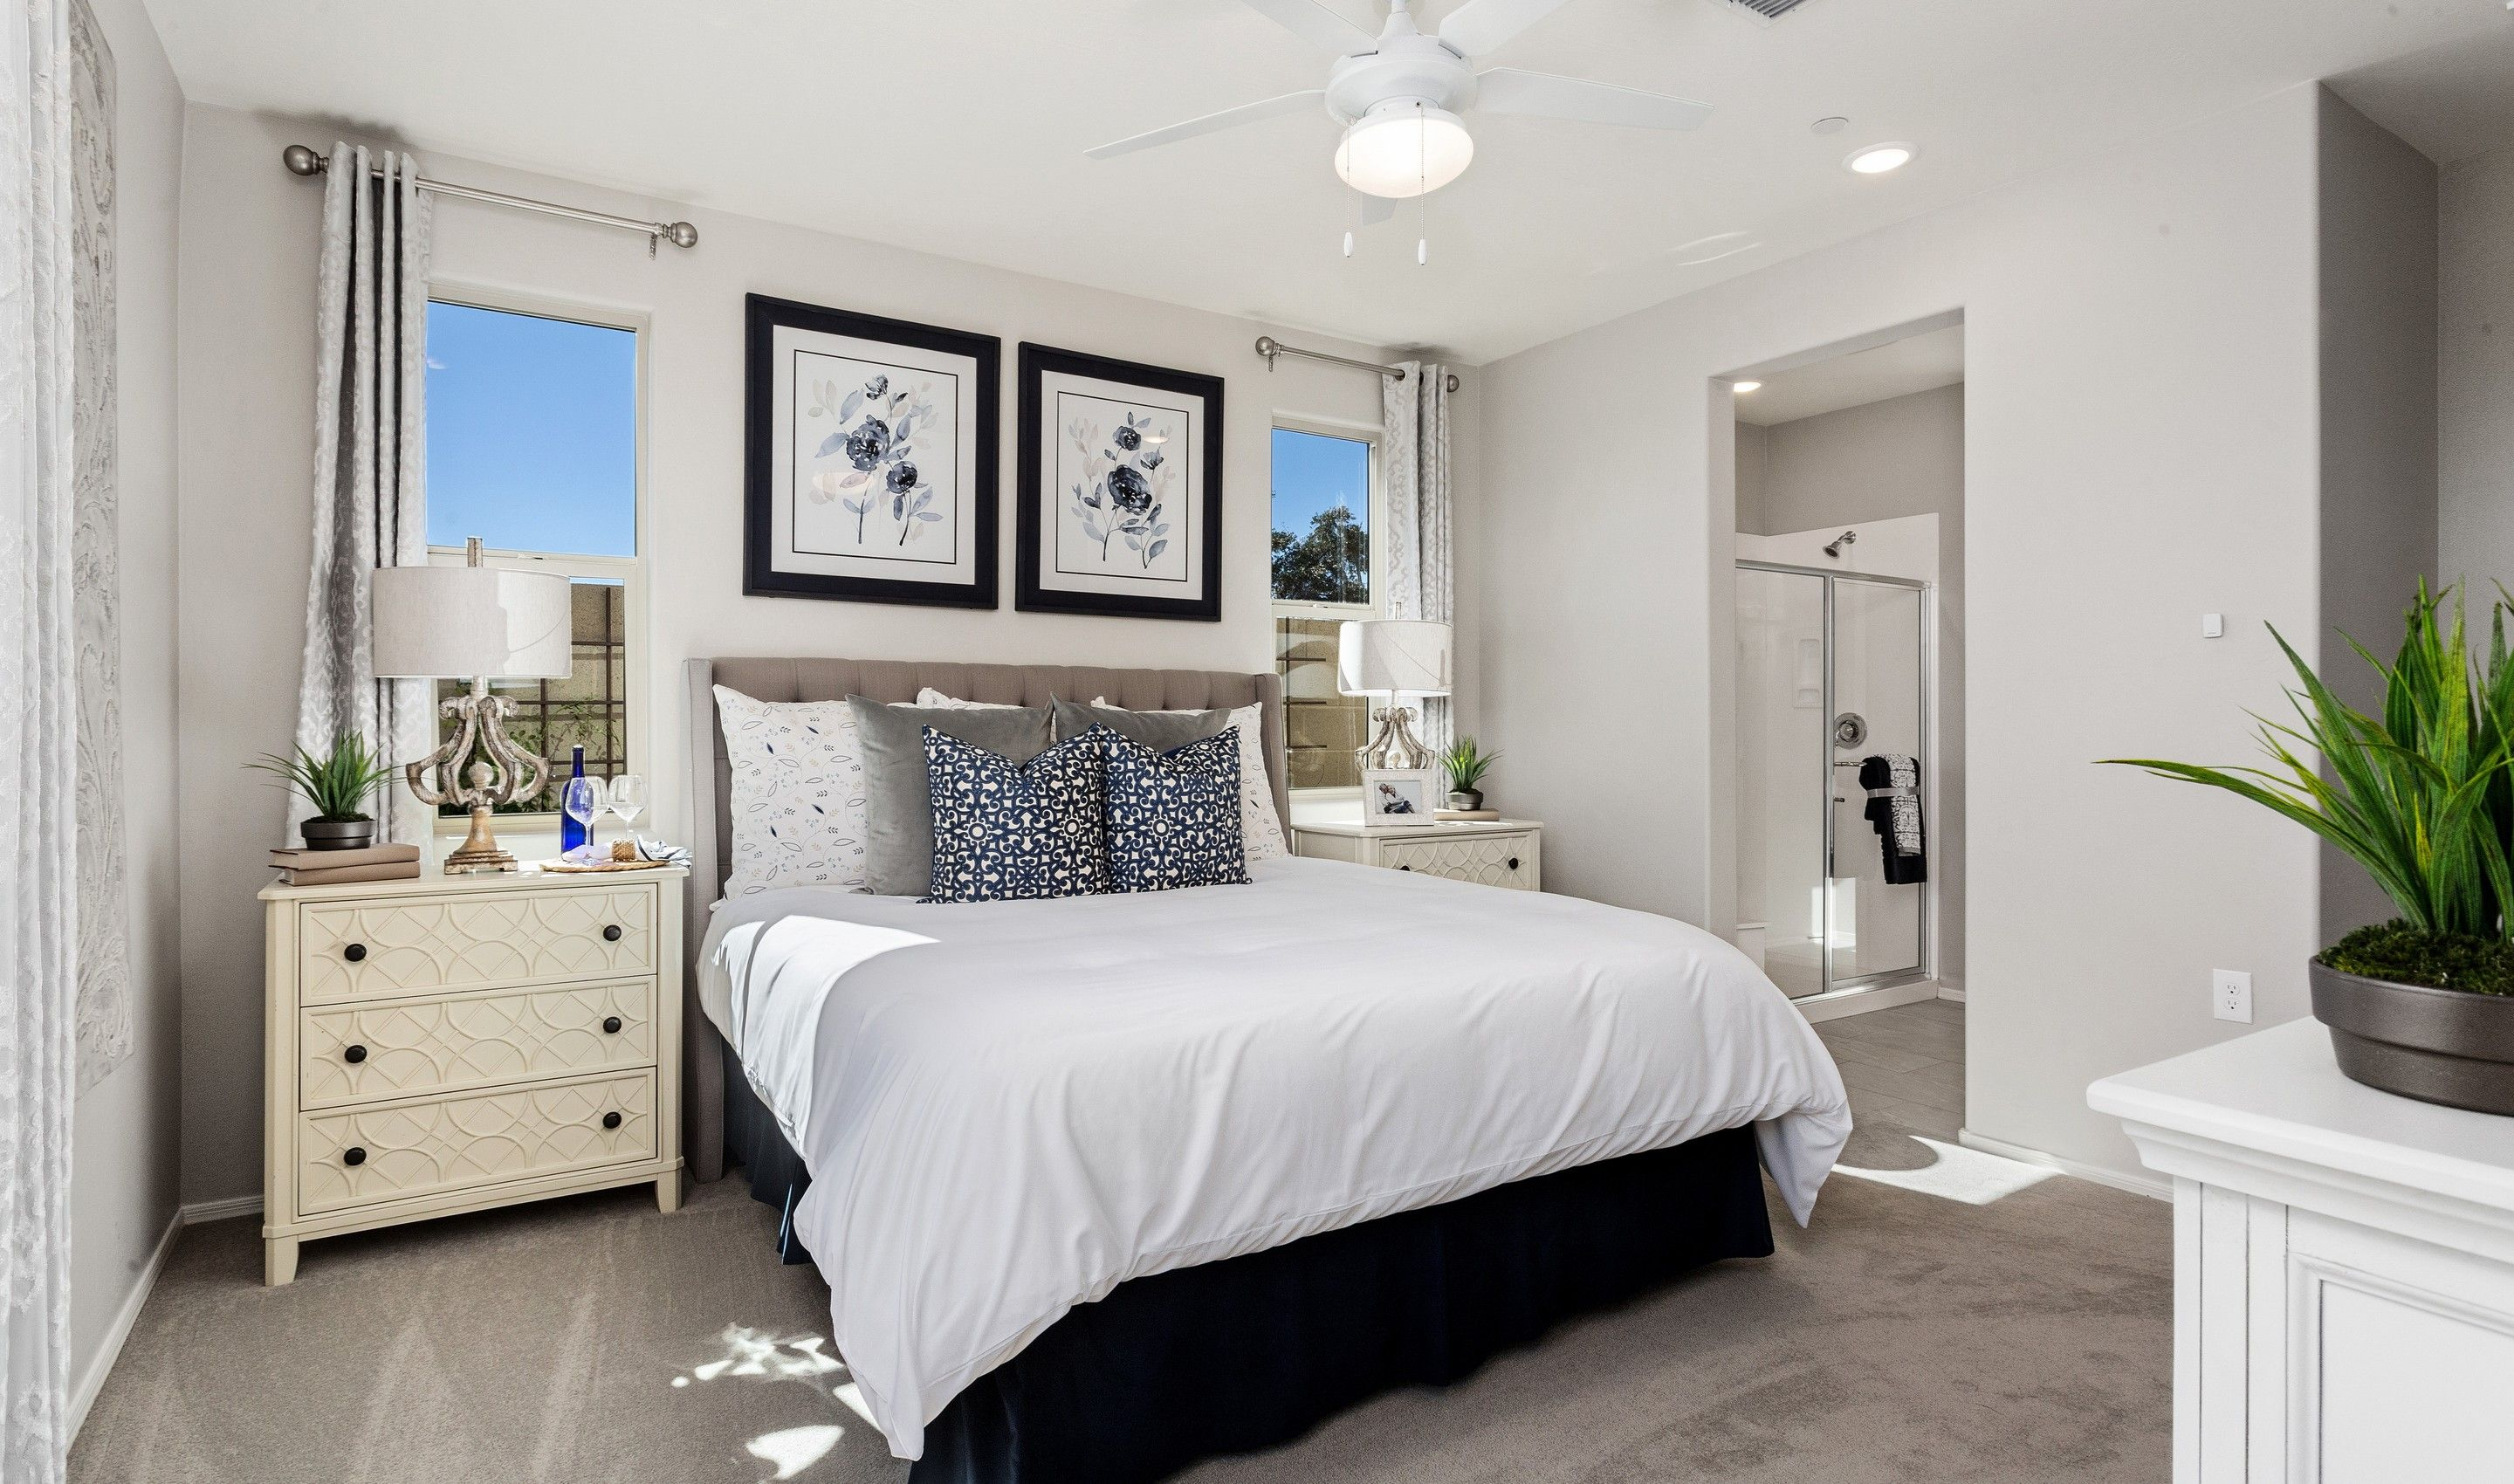 Bedroom featured in the Saguaro By K. Hovnanian's® Four Seasons in Phoenix-Mesa, AZ